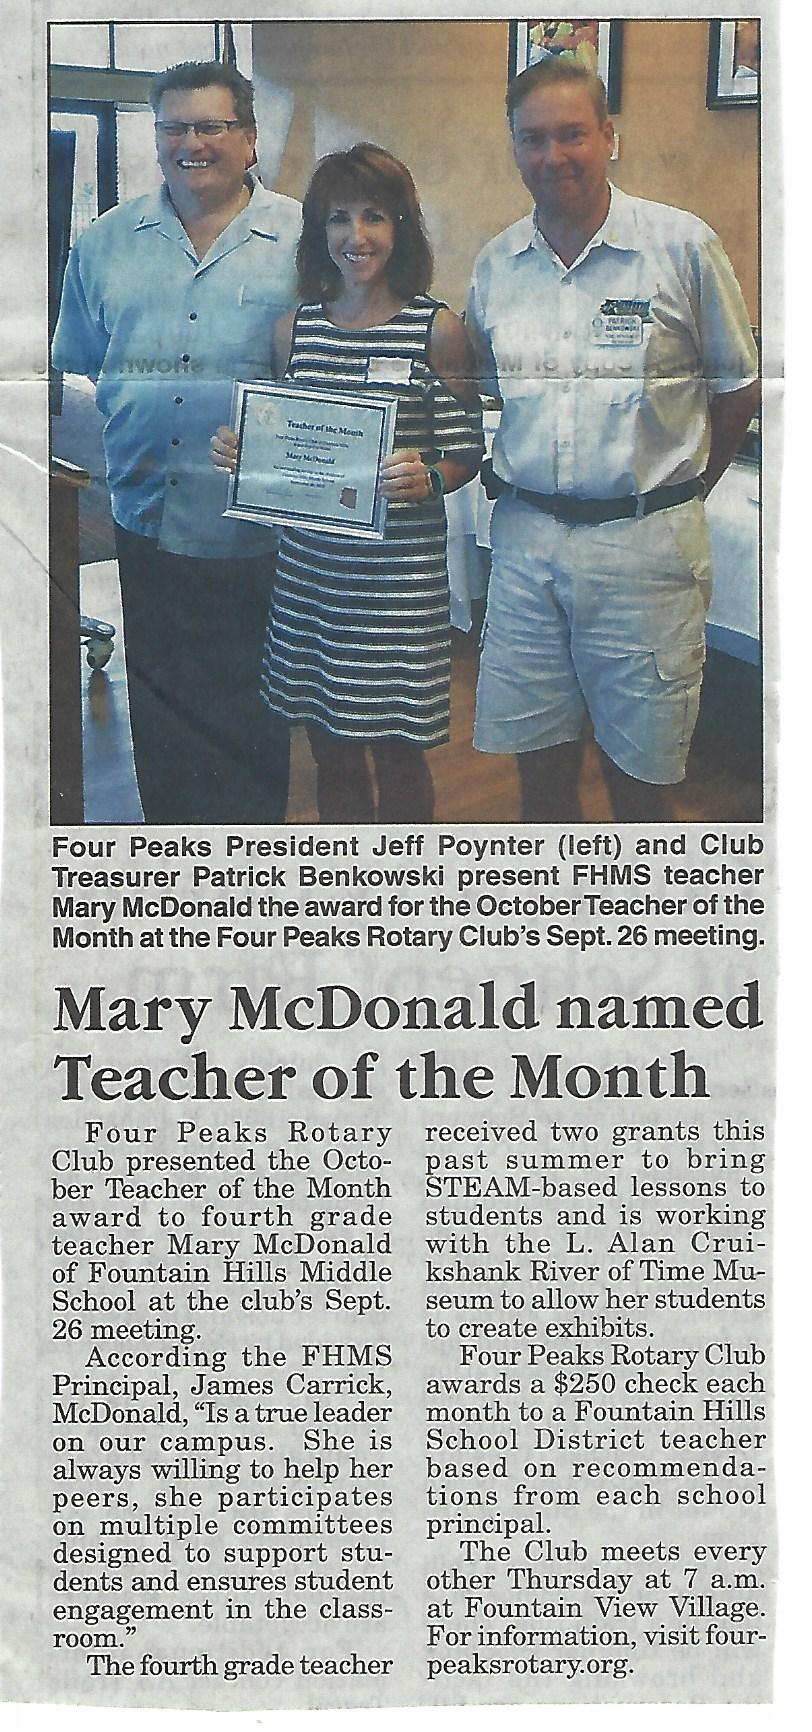 Four Peaks Rotary Club Teacher of the Month